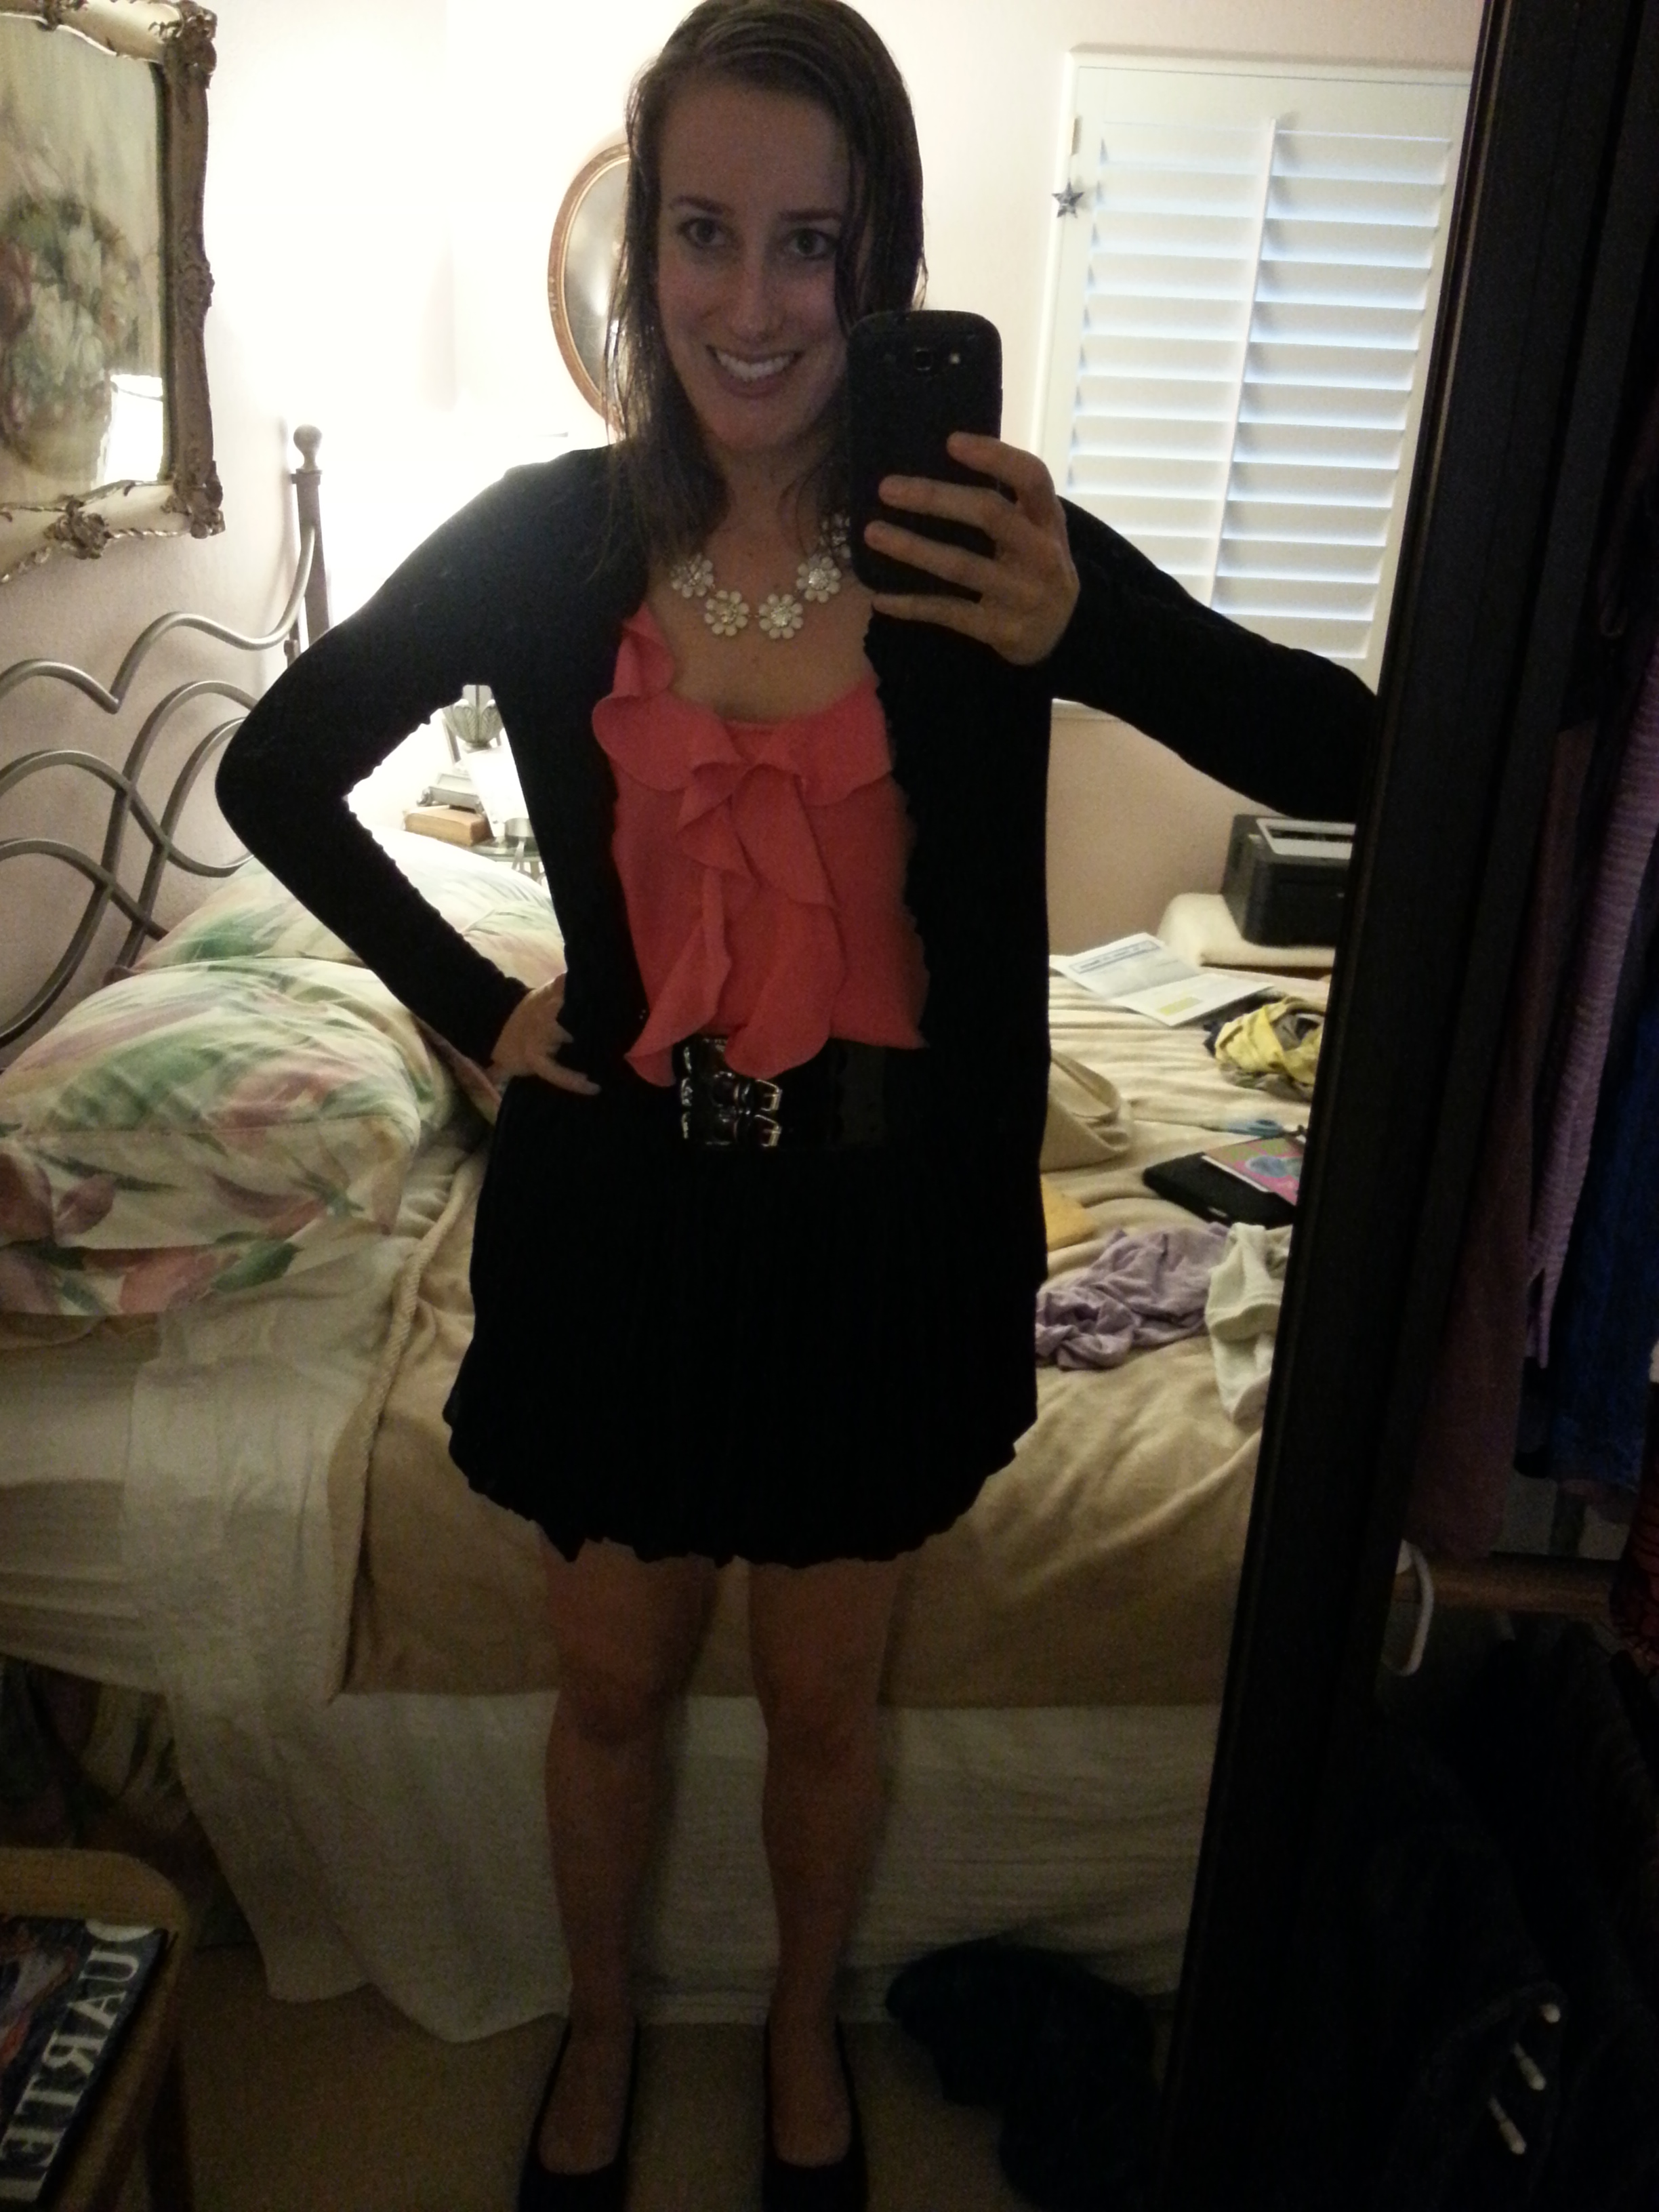 al's bday dinner outfit